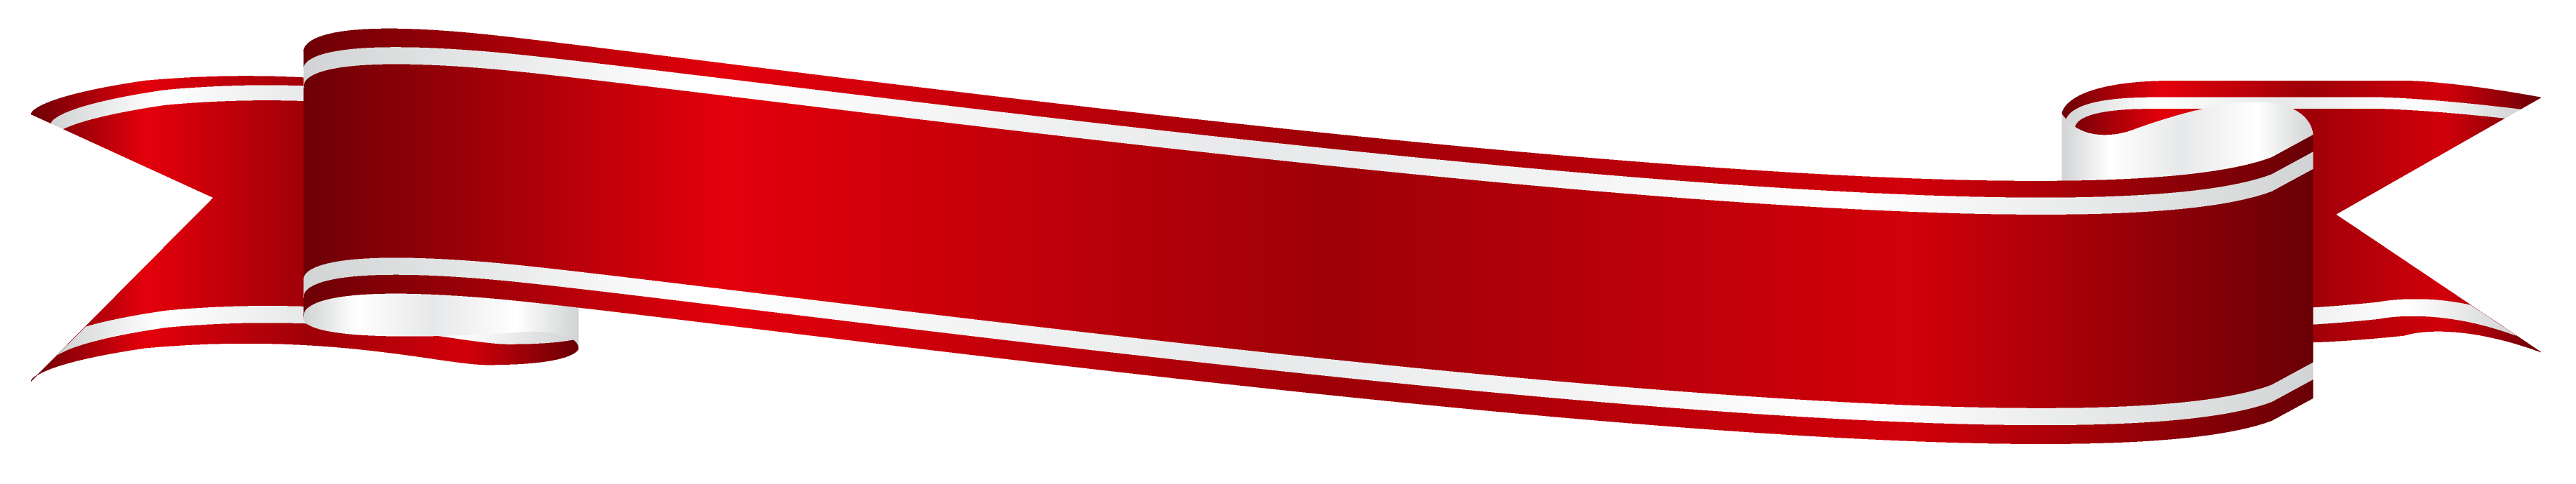 Angle Brand Banner Red Ribbon Free HD Image PNG Image